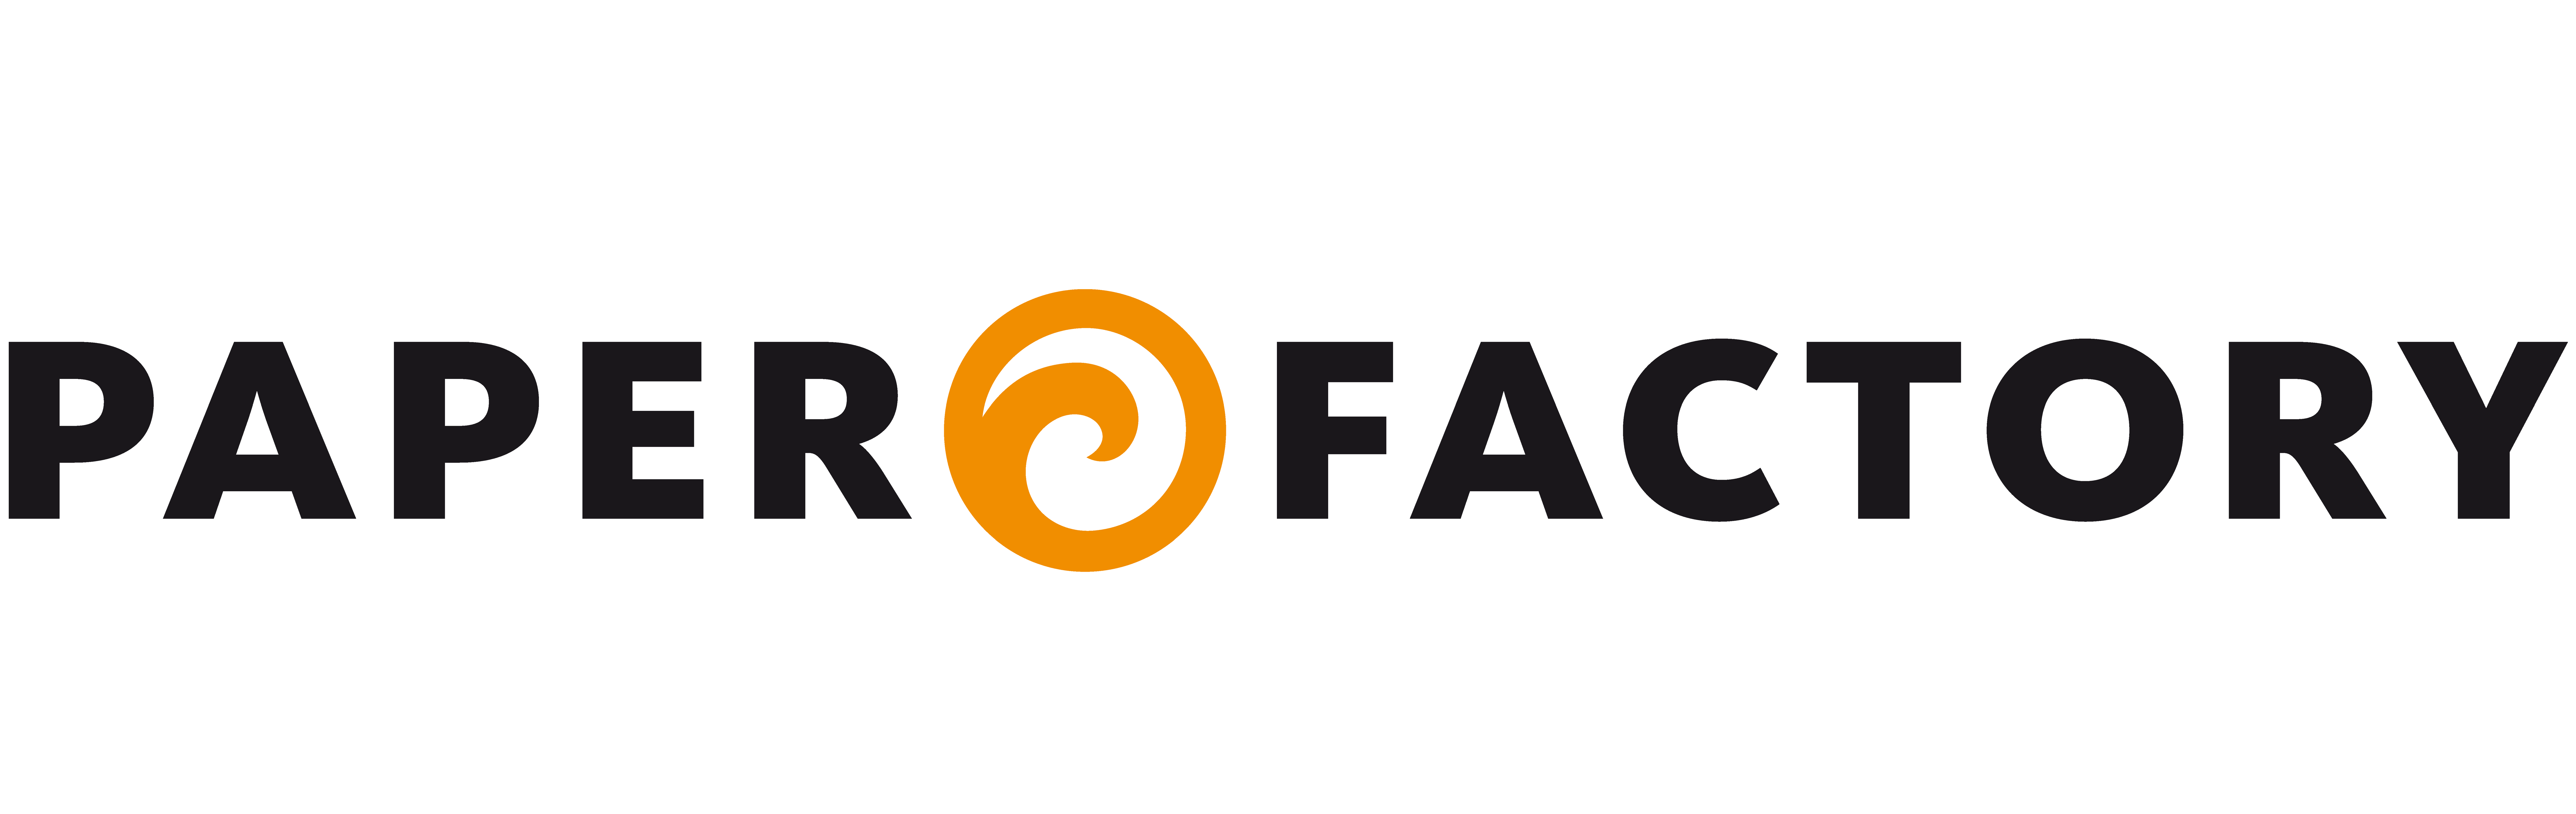 PaperFactory.nl